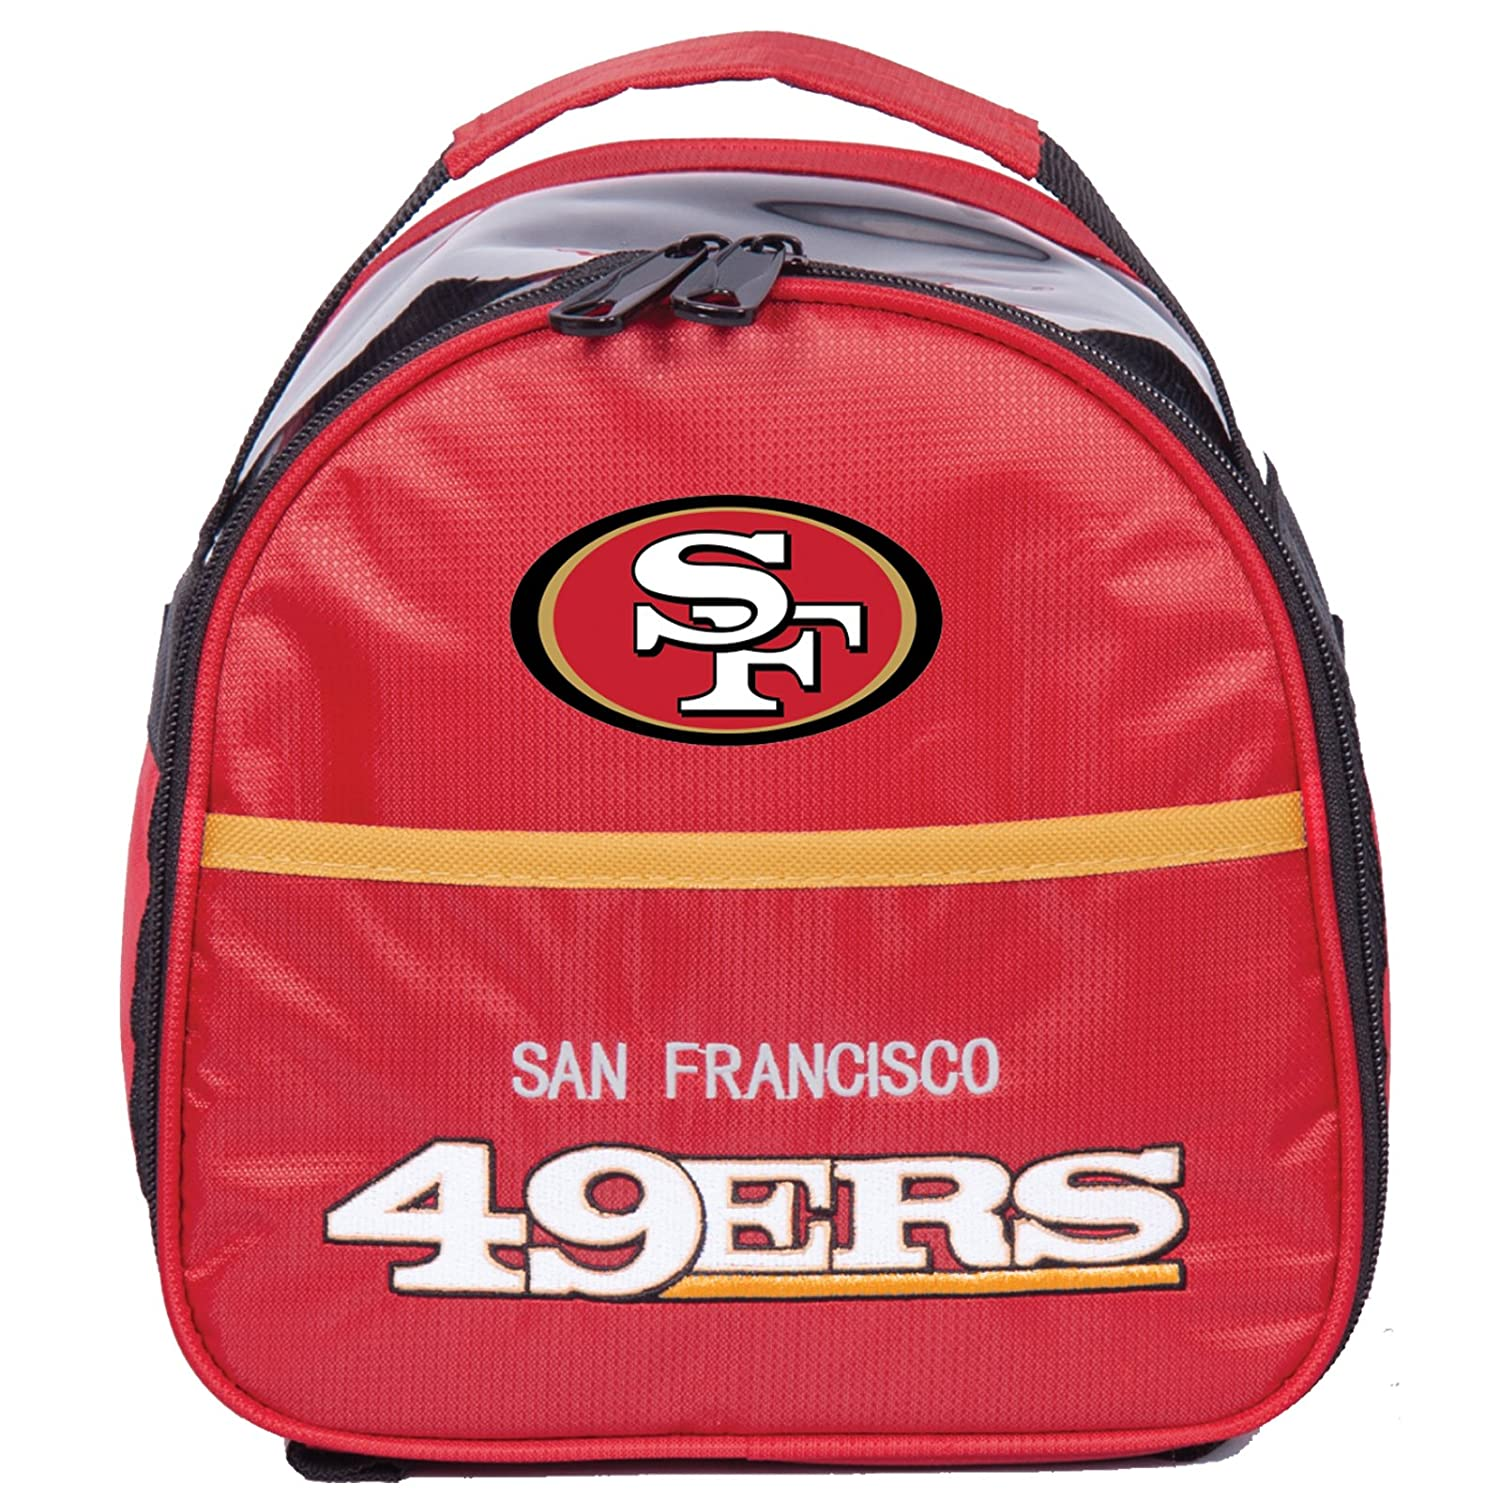 【日本未発売】 KR Strikeforce San Francisco Add 49ers Single Add Onボーリングバッグ Strikeforce、マルチカラー Francisco B01CV7QVZC, ヒエヌキグン:c4dbf9fe --- ciadaterra.com